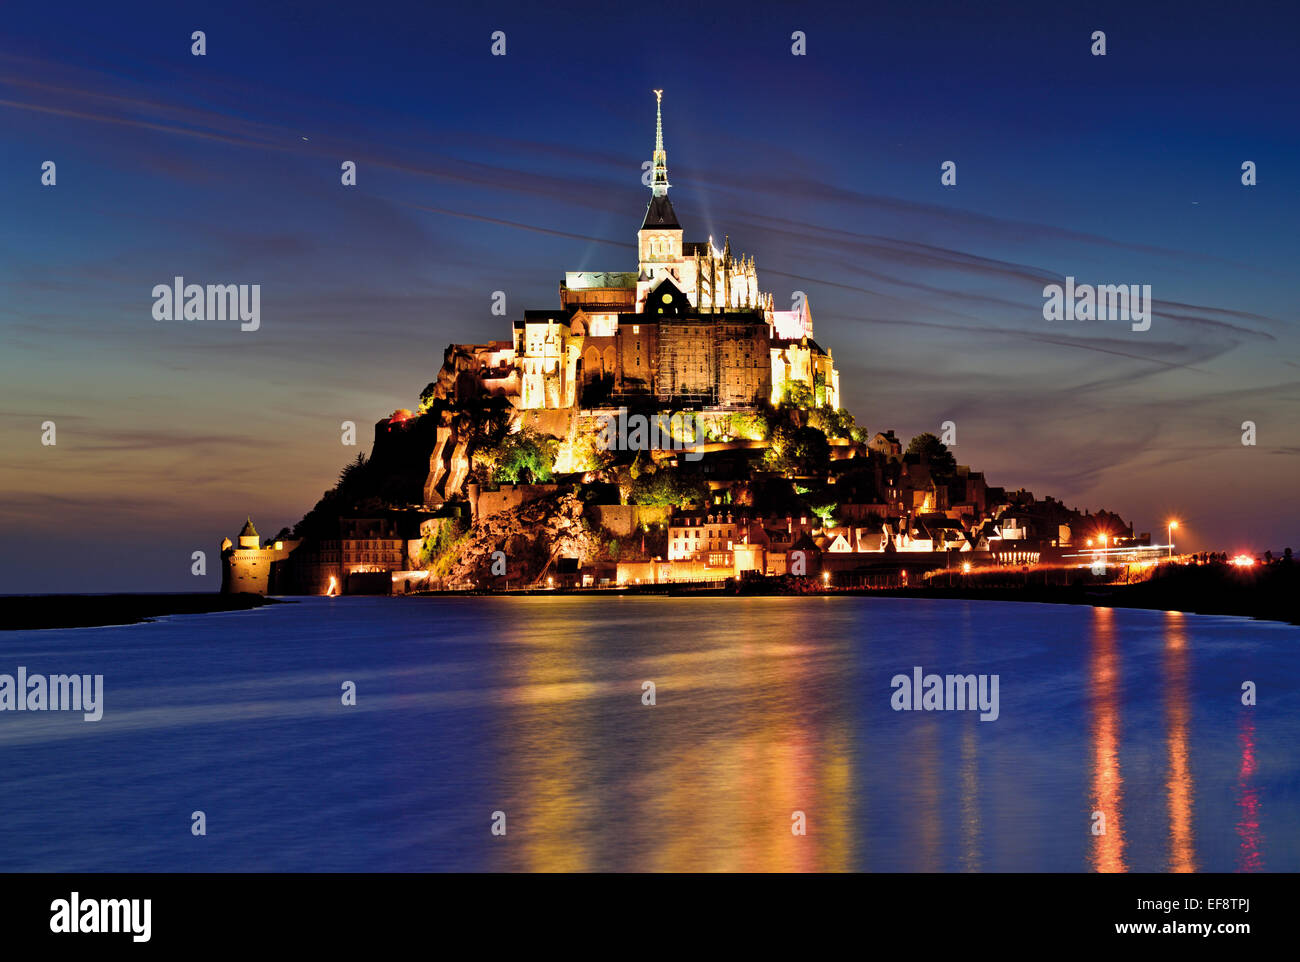 France, Normandy: Illuminated  Le Mont Saint Michel by night - Stock Image